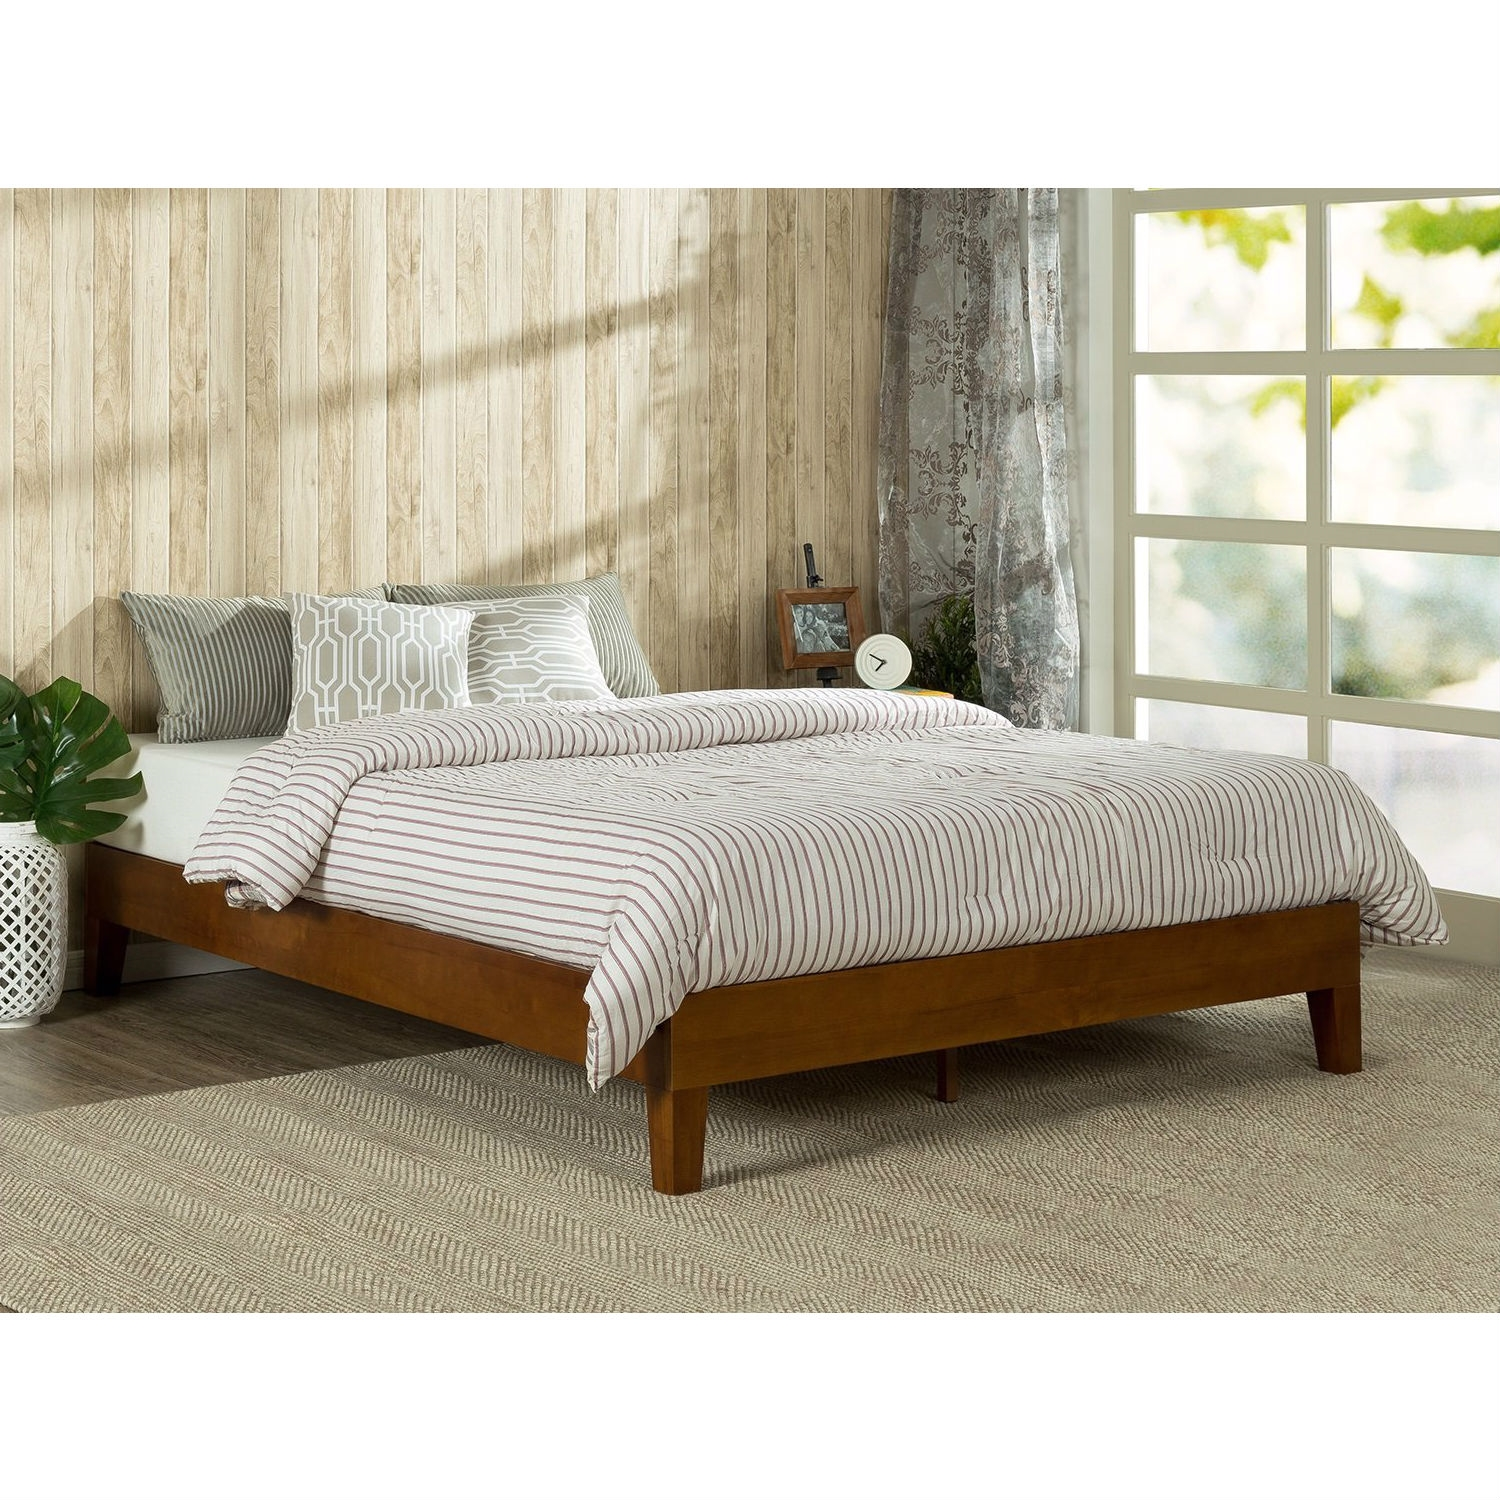 Twin Size Low Profile Wooden Platform Bed Frame In Cherry